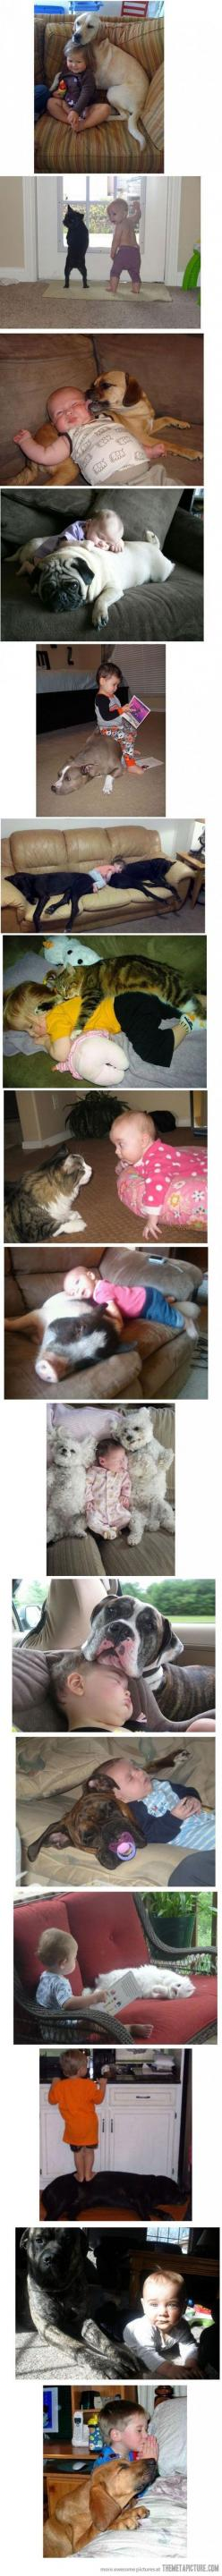 Babies and kids really have a special relationship with their pets. Each picture tells us so more about their love for their human.: Best Friends, Sweet, Pets, Puppy, Baby, Kids, Dog, Animal